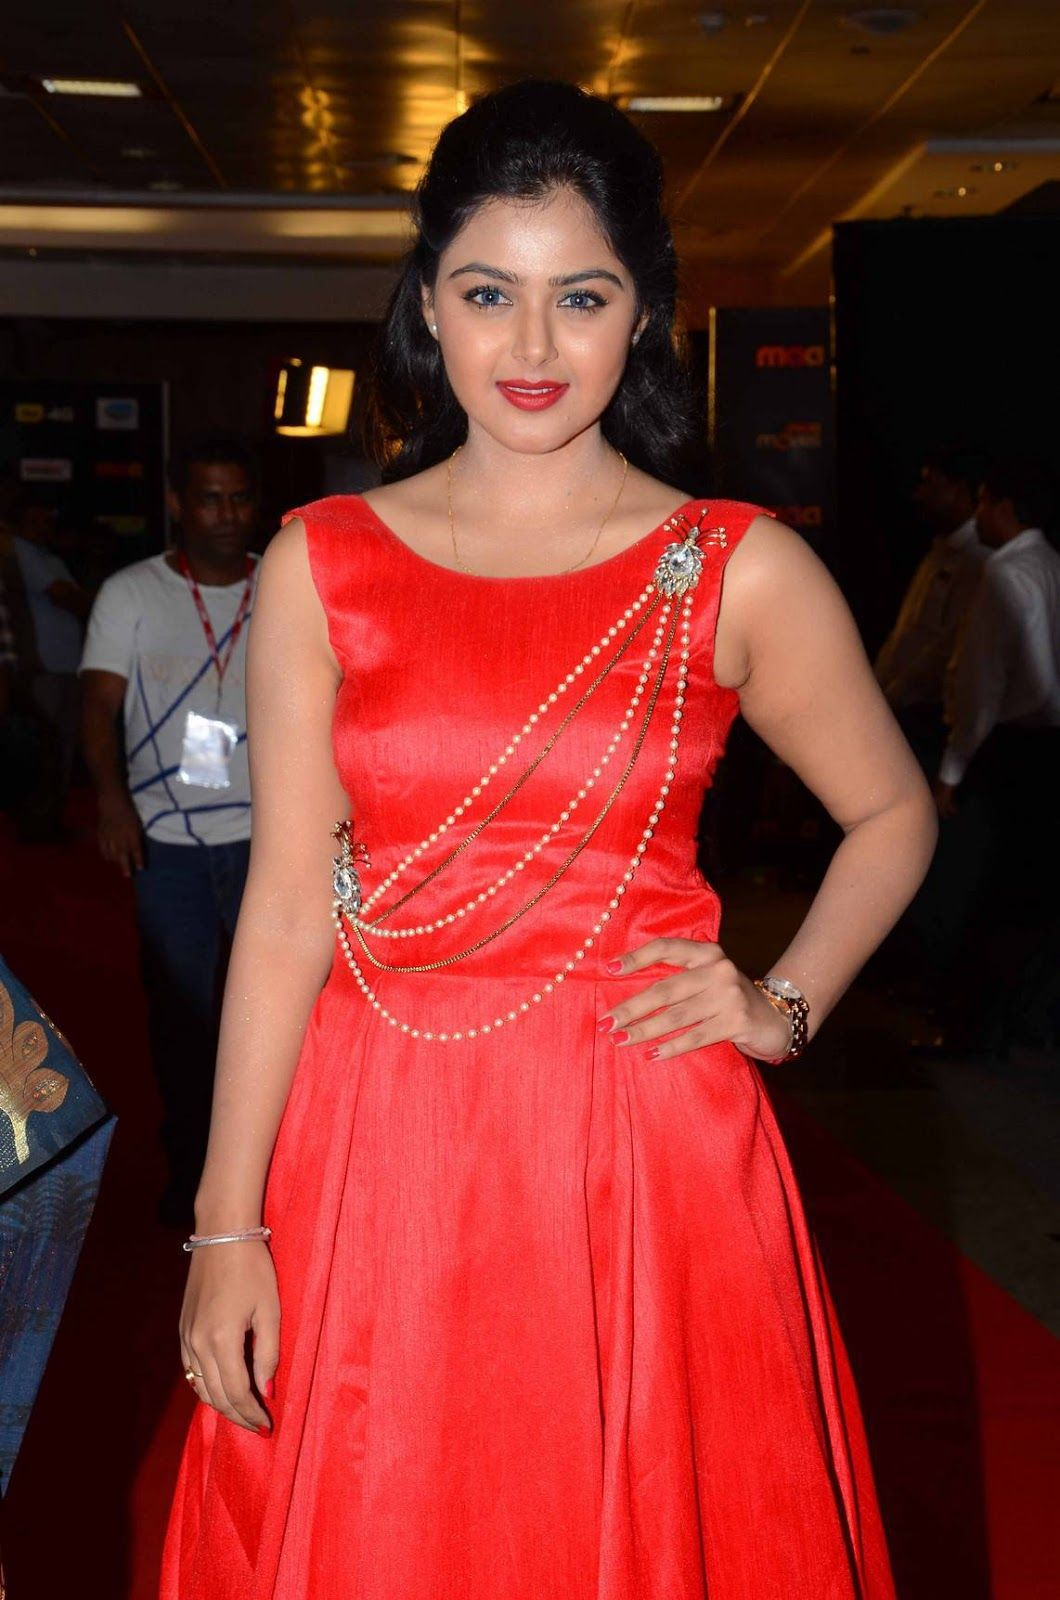 bfb4e583de Monal Gajjar Pics In Red Dress At Cinemaa Awards | Monal gajjar ...